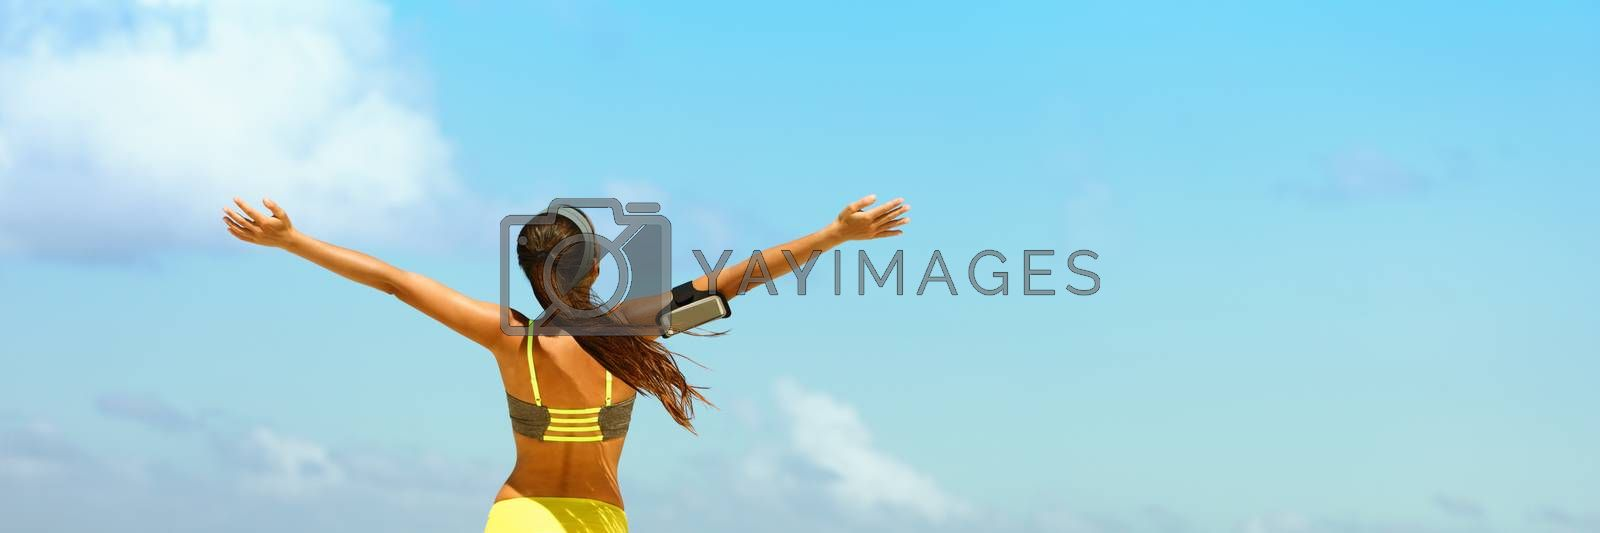 Fitness healthy lifestyle running woman banner by Maridav